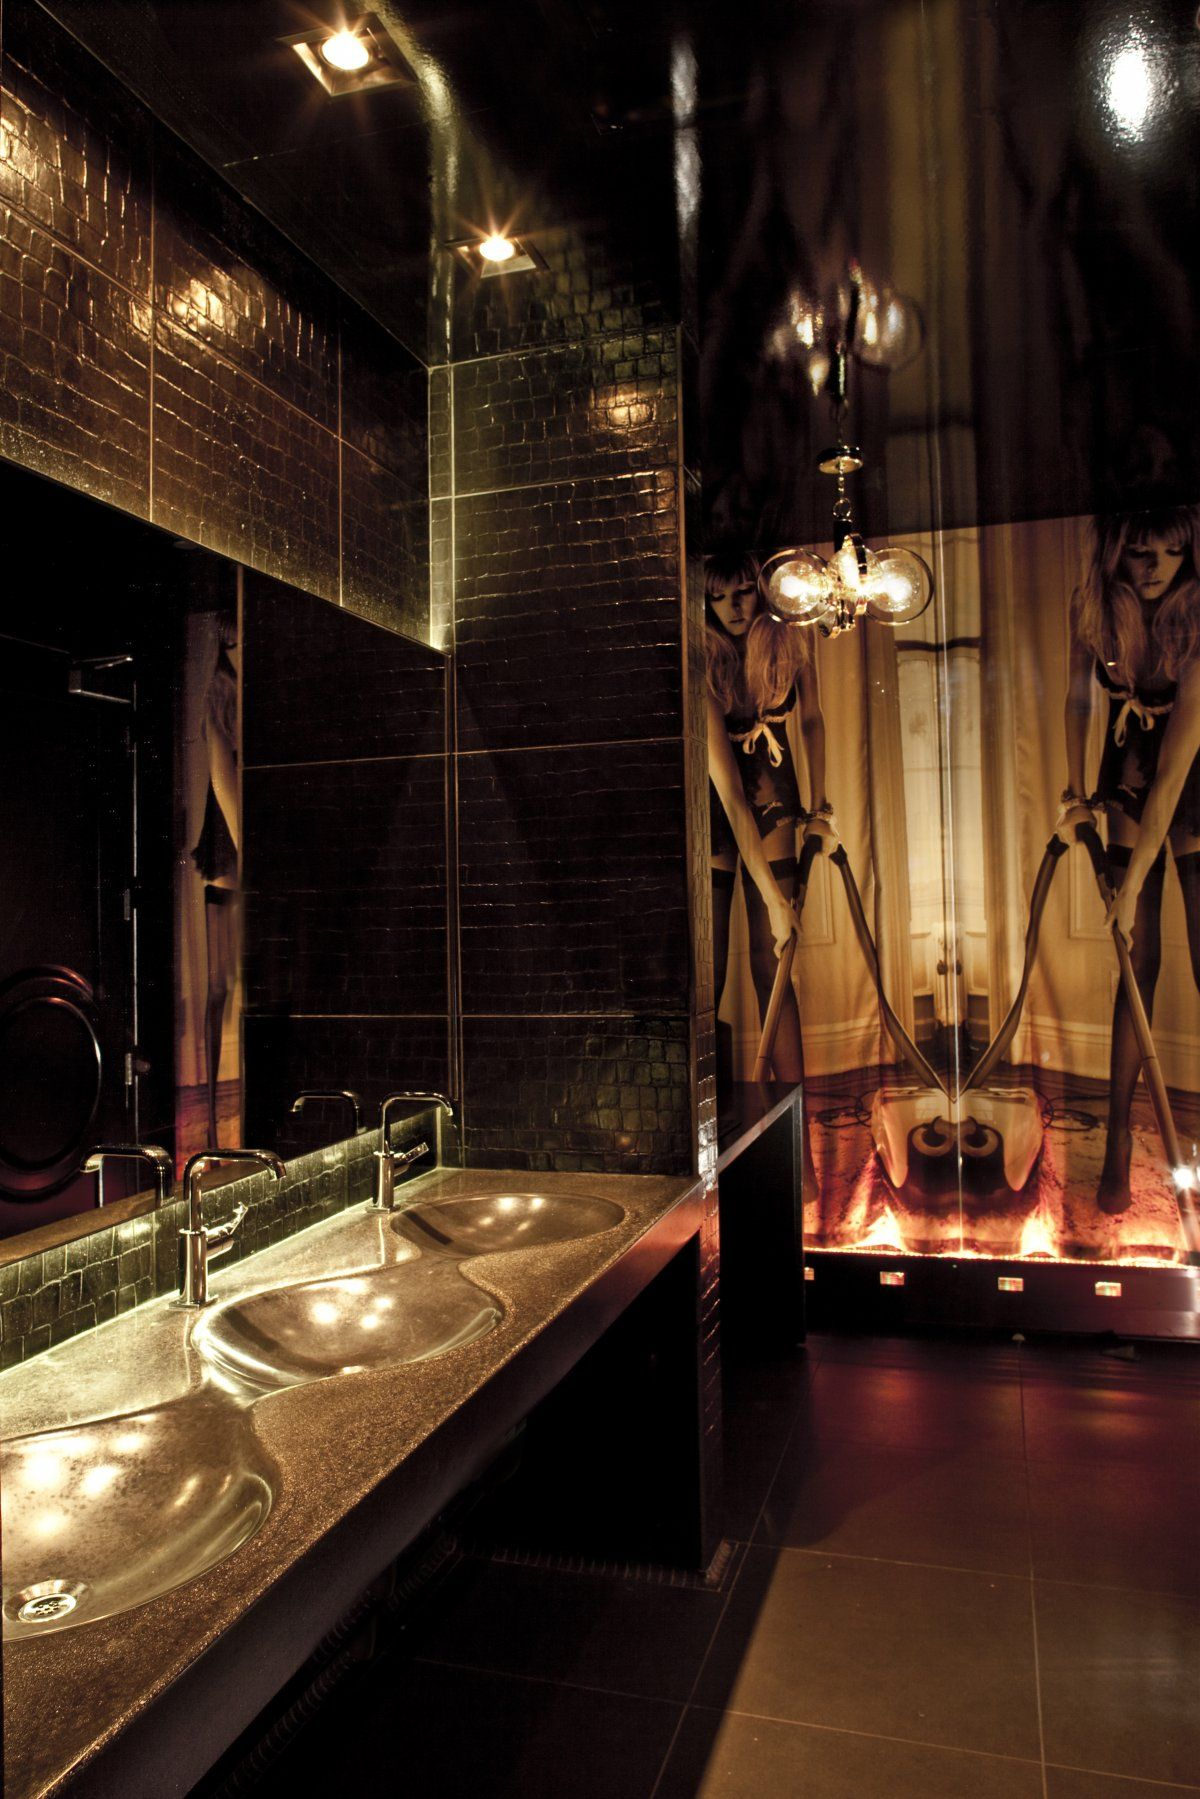 Hotel Room Wall: The Men's Room At Vanity Boasts Flat Screens Over The